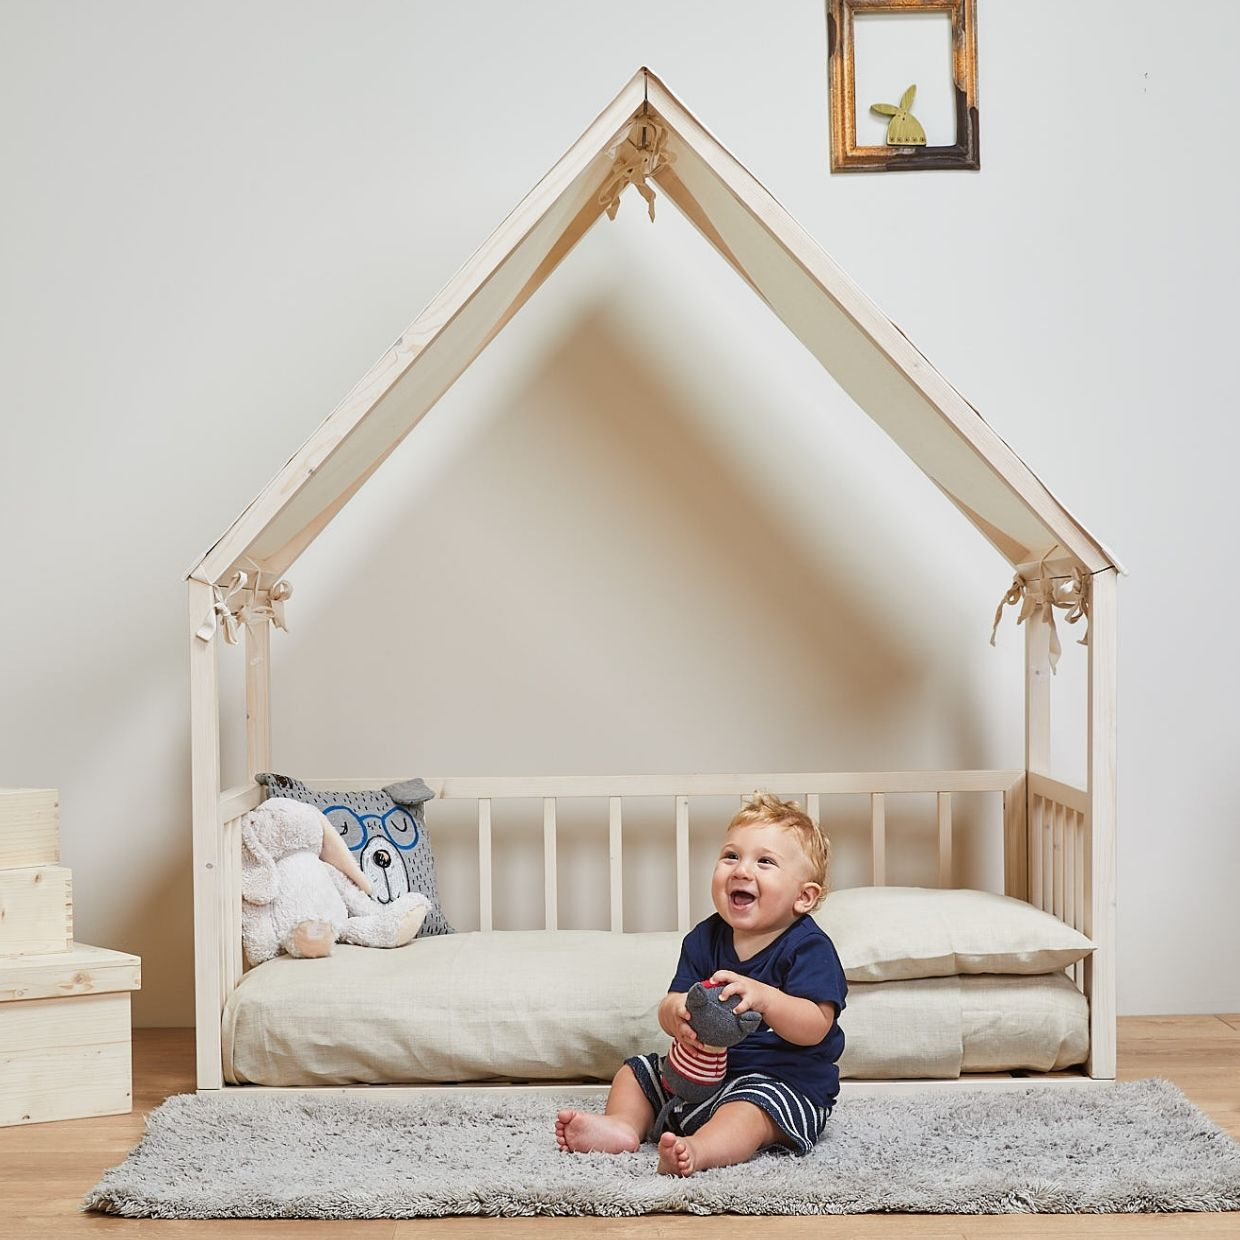 Housebed By Ettomio Eco Friendly Kids Wooden Bed Afilii